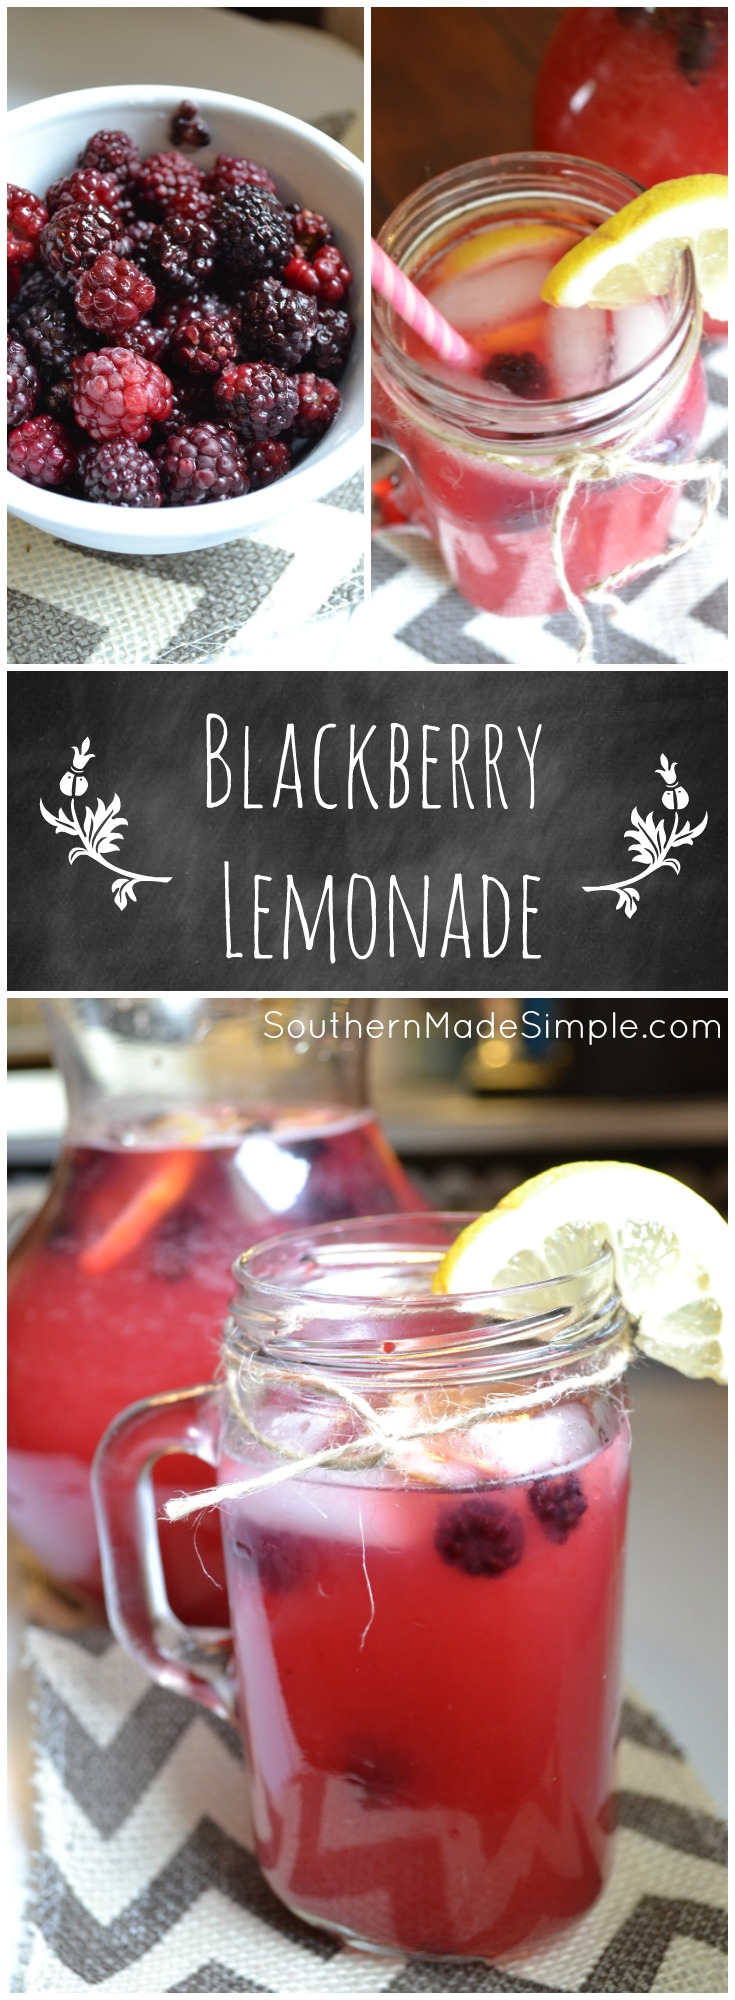 Refreshing Blackberry Lemonade - A PERFECT summertime treat!